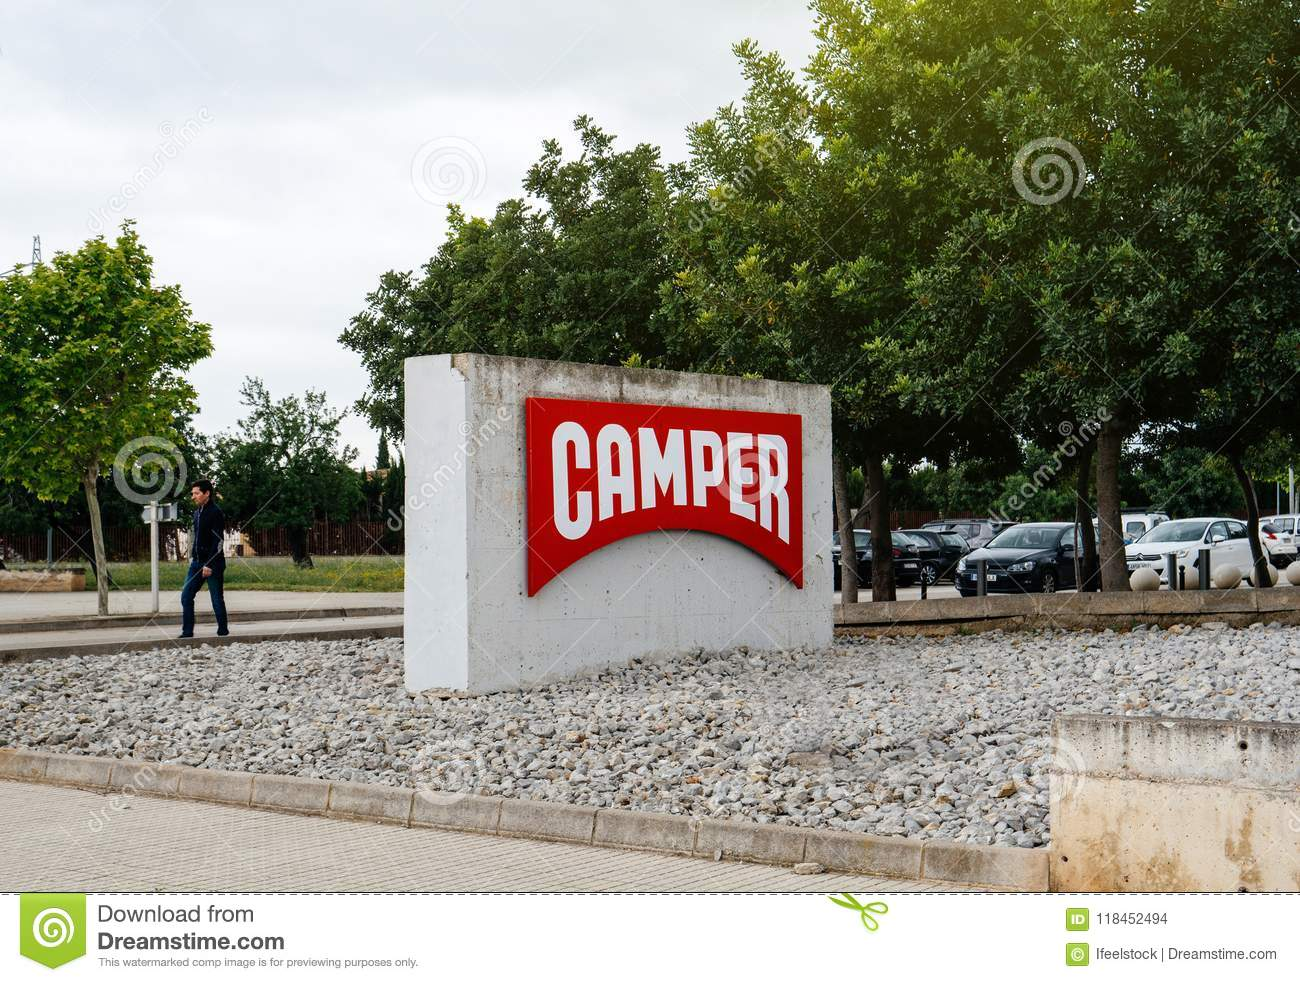 In Shoe Stock Afbeelding Camper Headquarter Redactionele Inca Factory C7Ttqwa